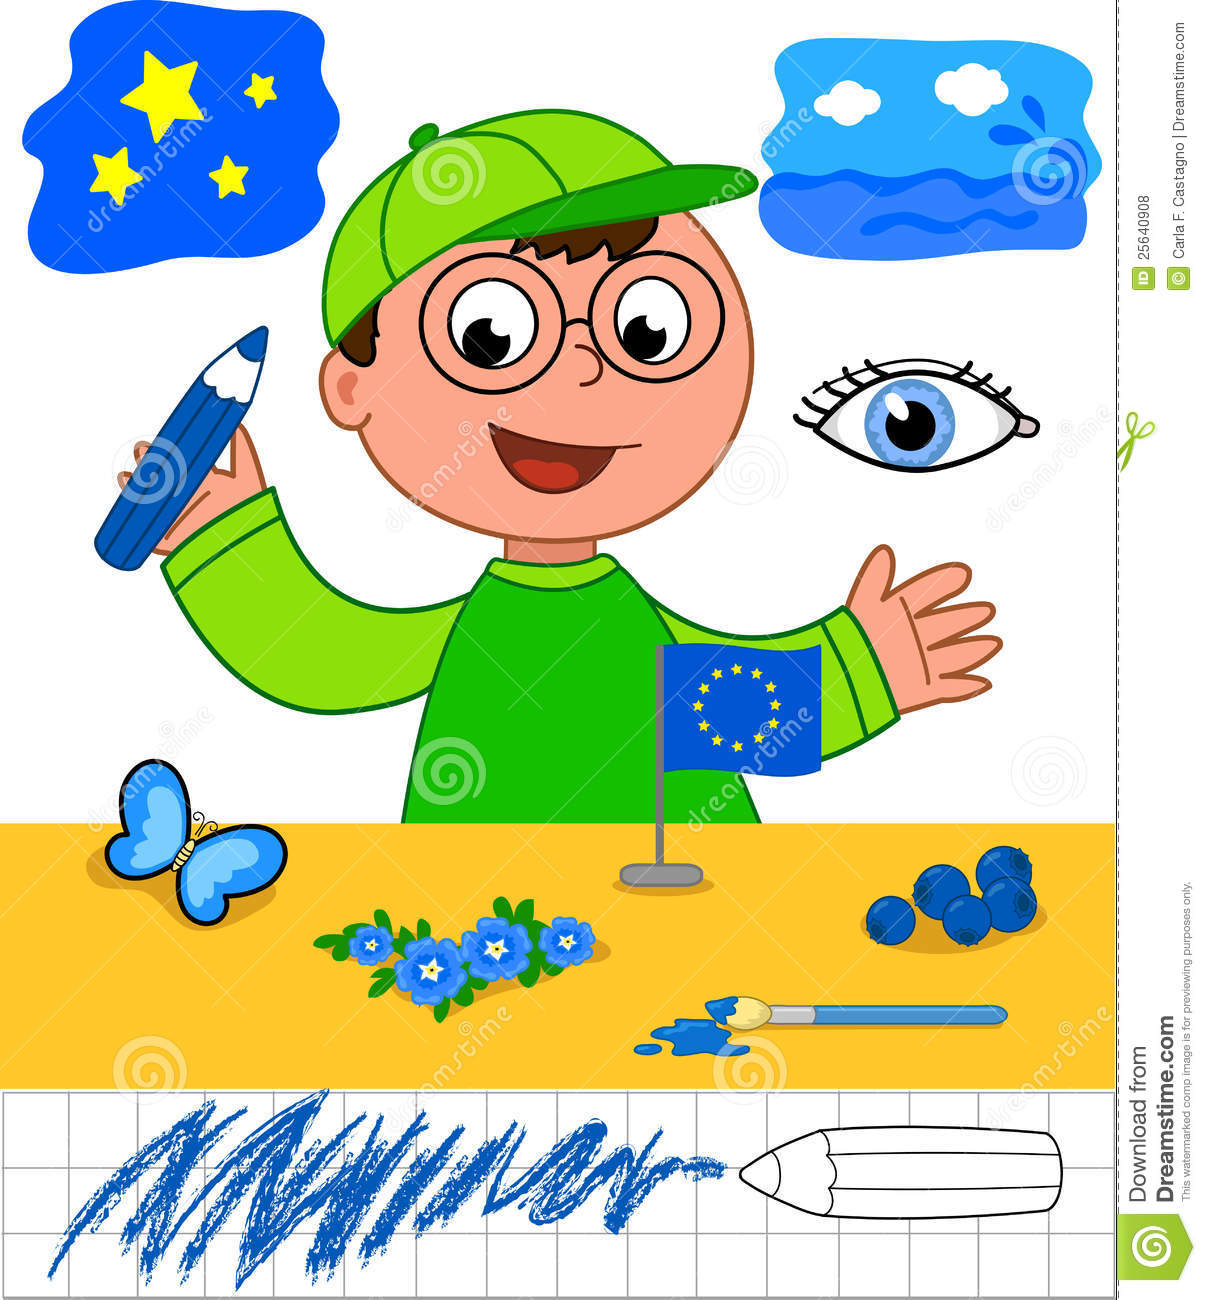 Colors: Boy With Blue Objects Stock Vector - Illustration of child ...